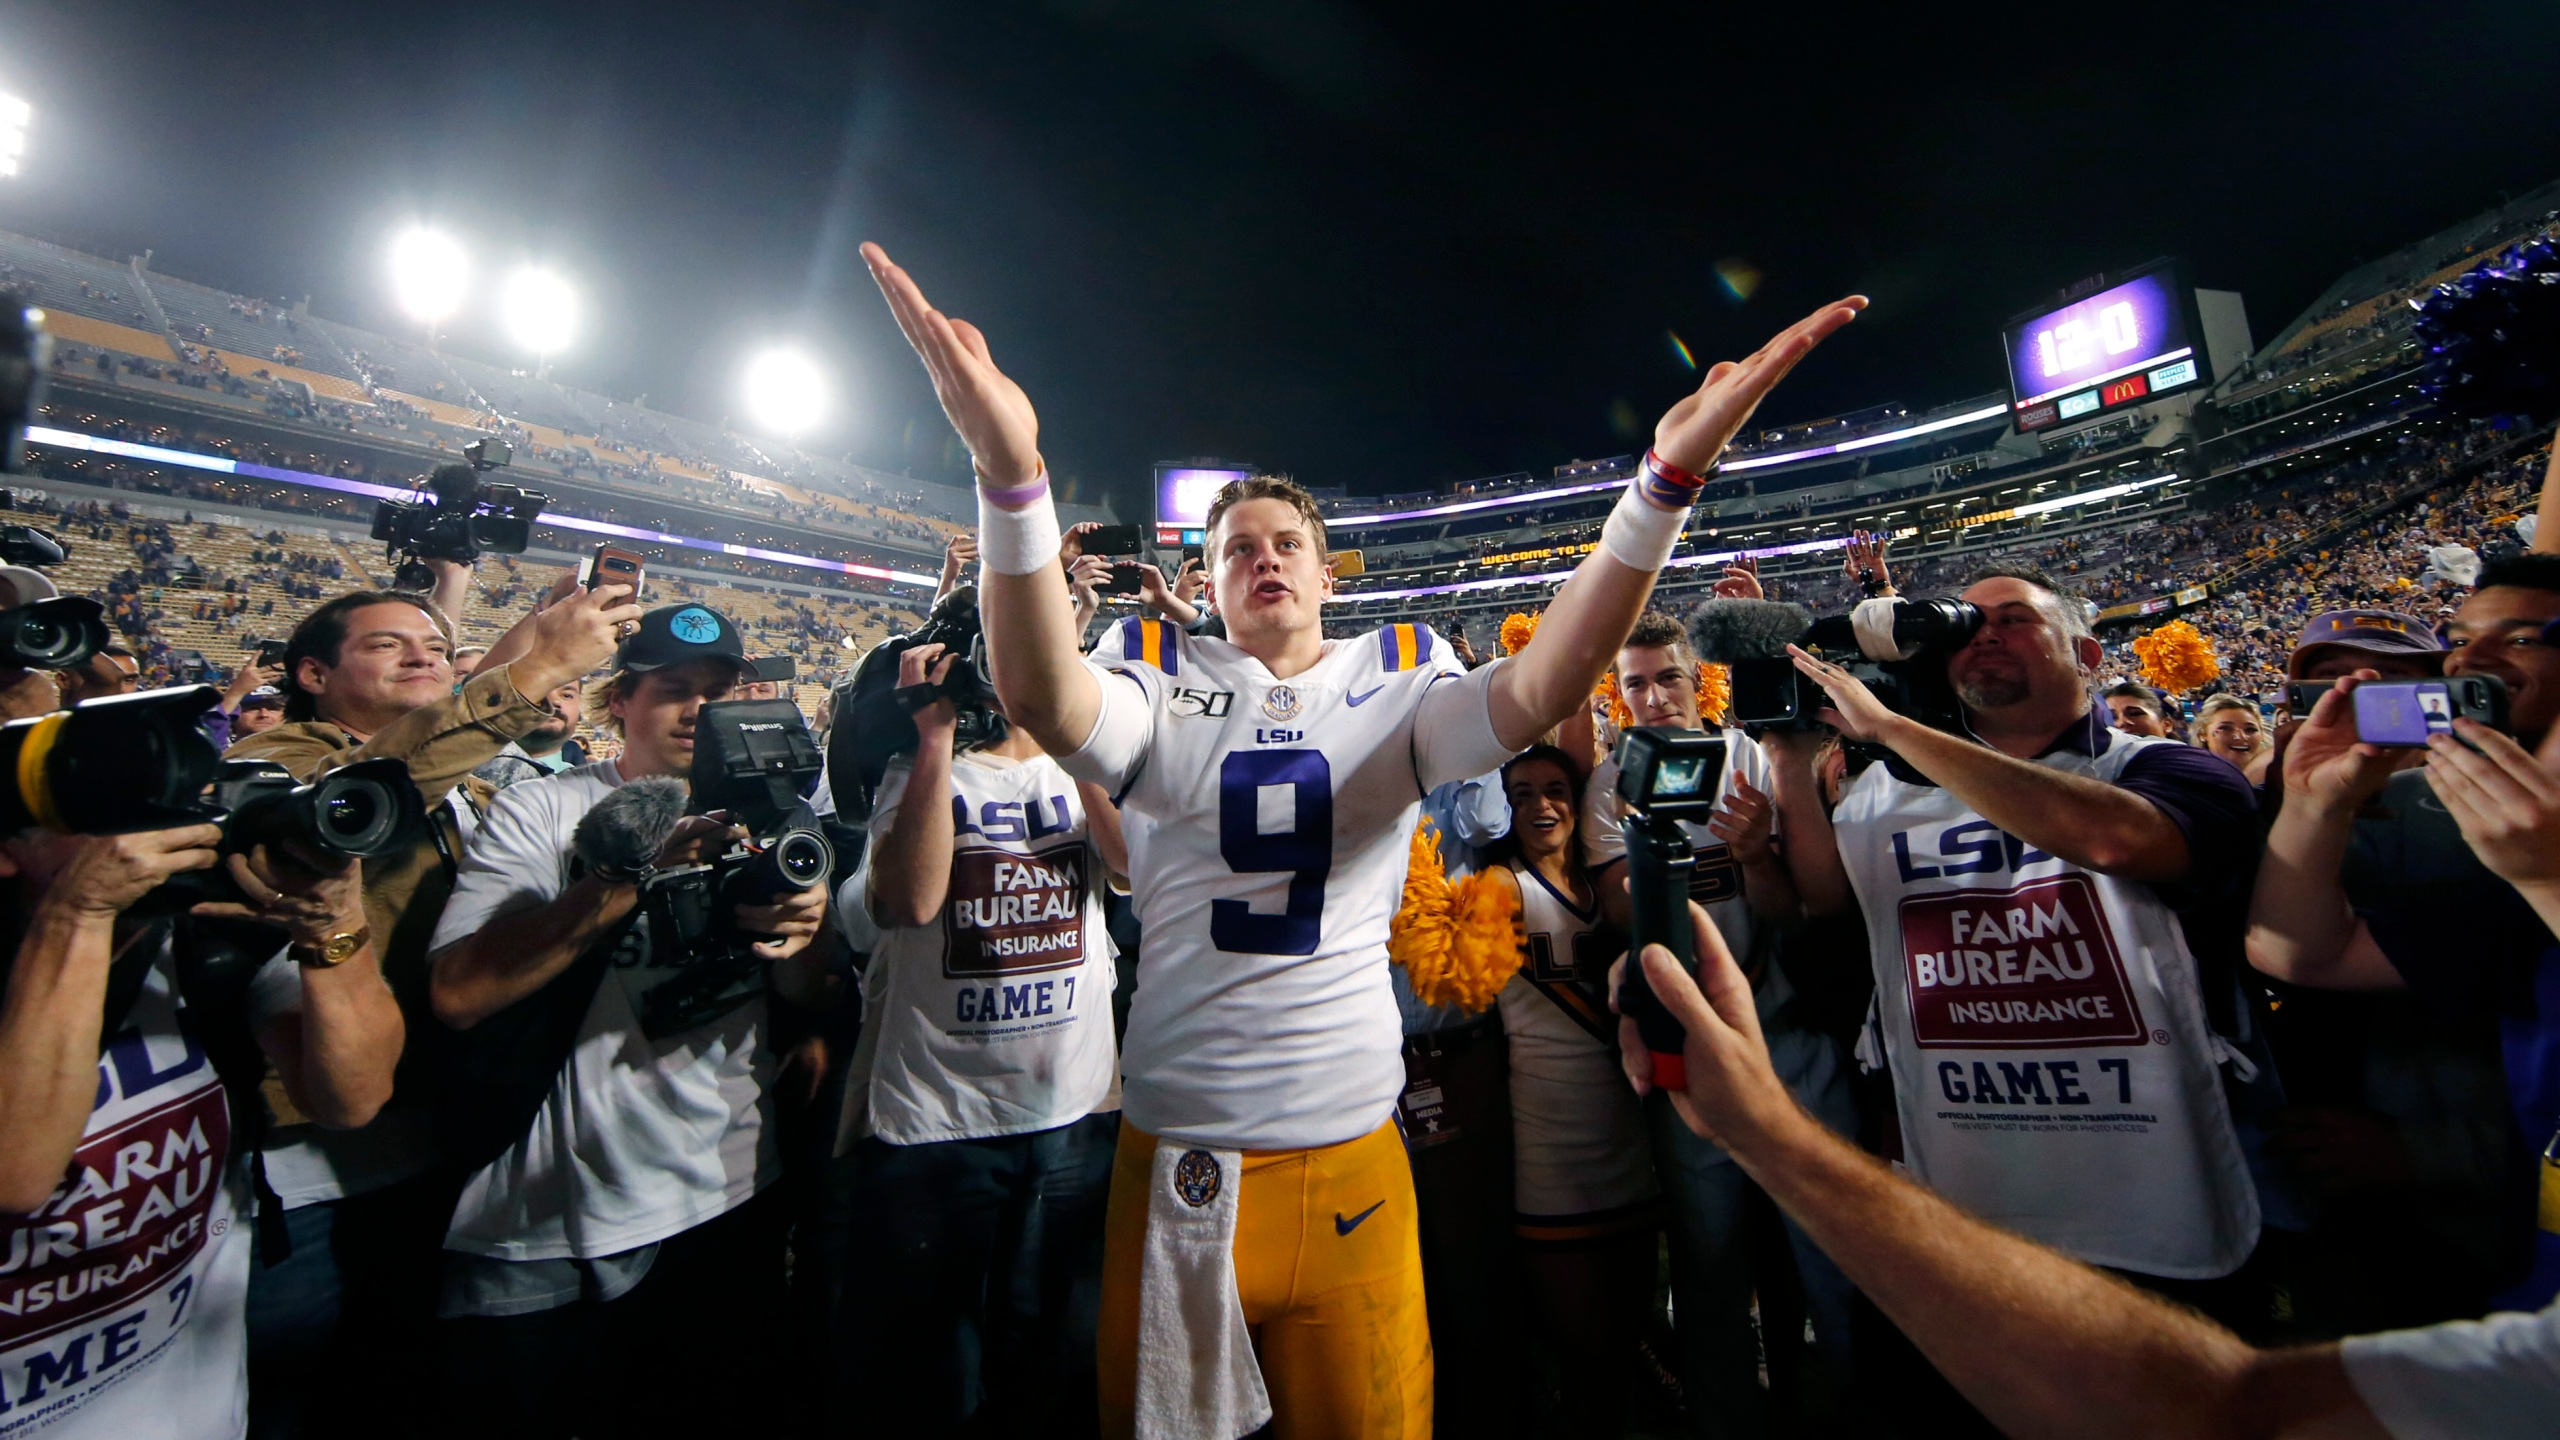 College Football Picks Searching For Upsets To Scramble Cfp